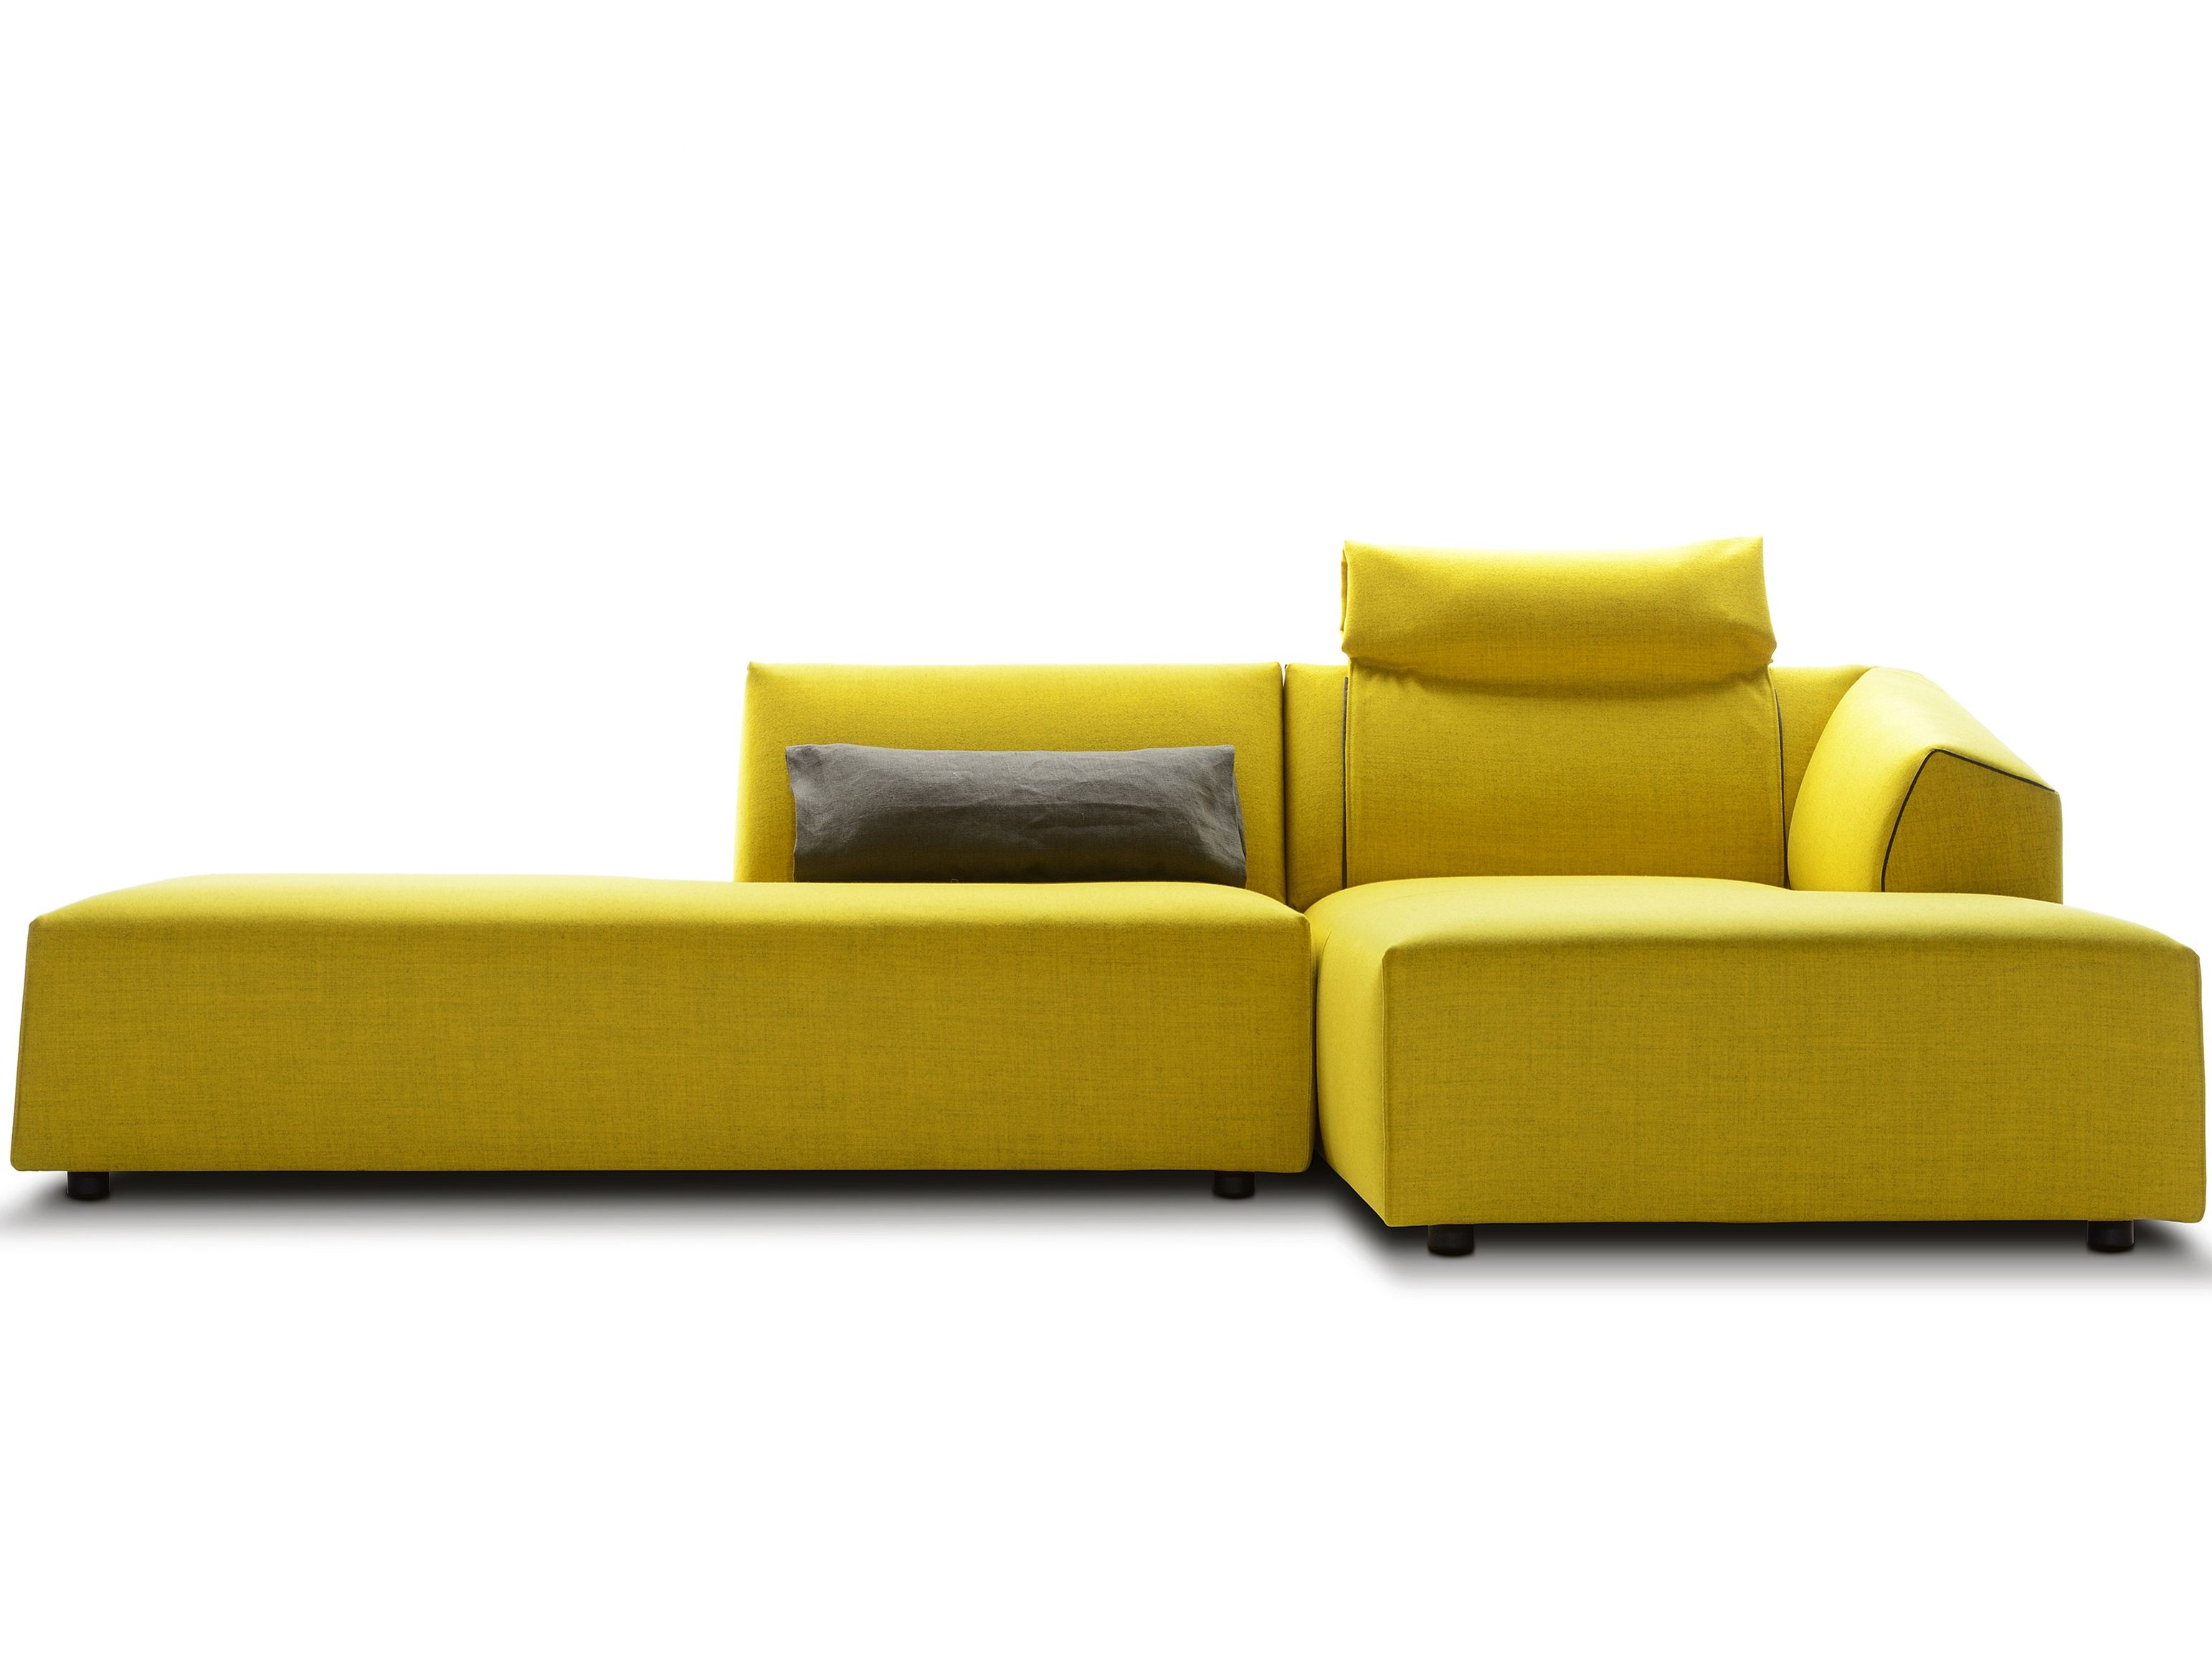 Thea sofa with chaise longue by mdf italia design lina - Cubre sofa chaise longue ...